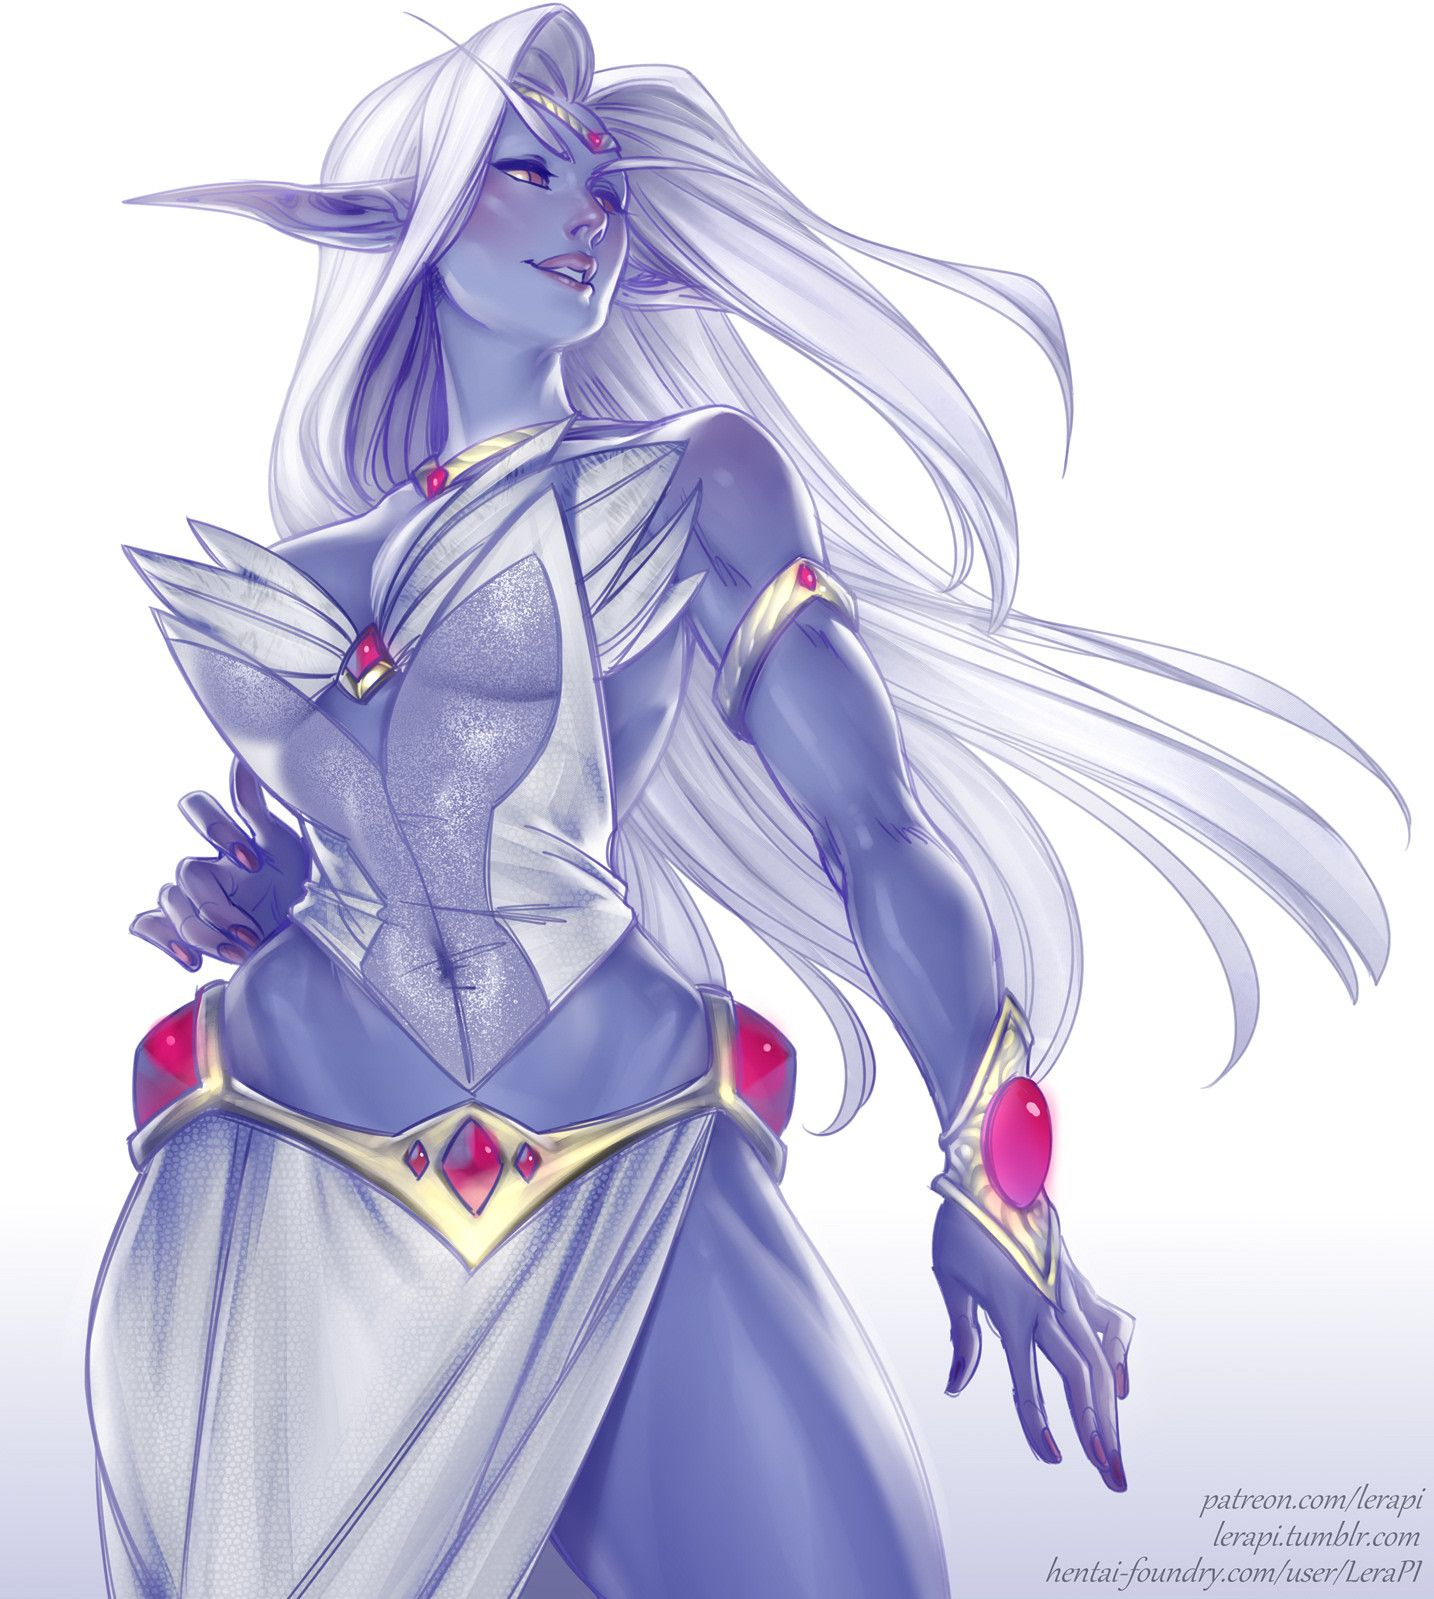 Photo of Azshara from WoW, Lera Pi